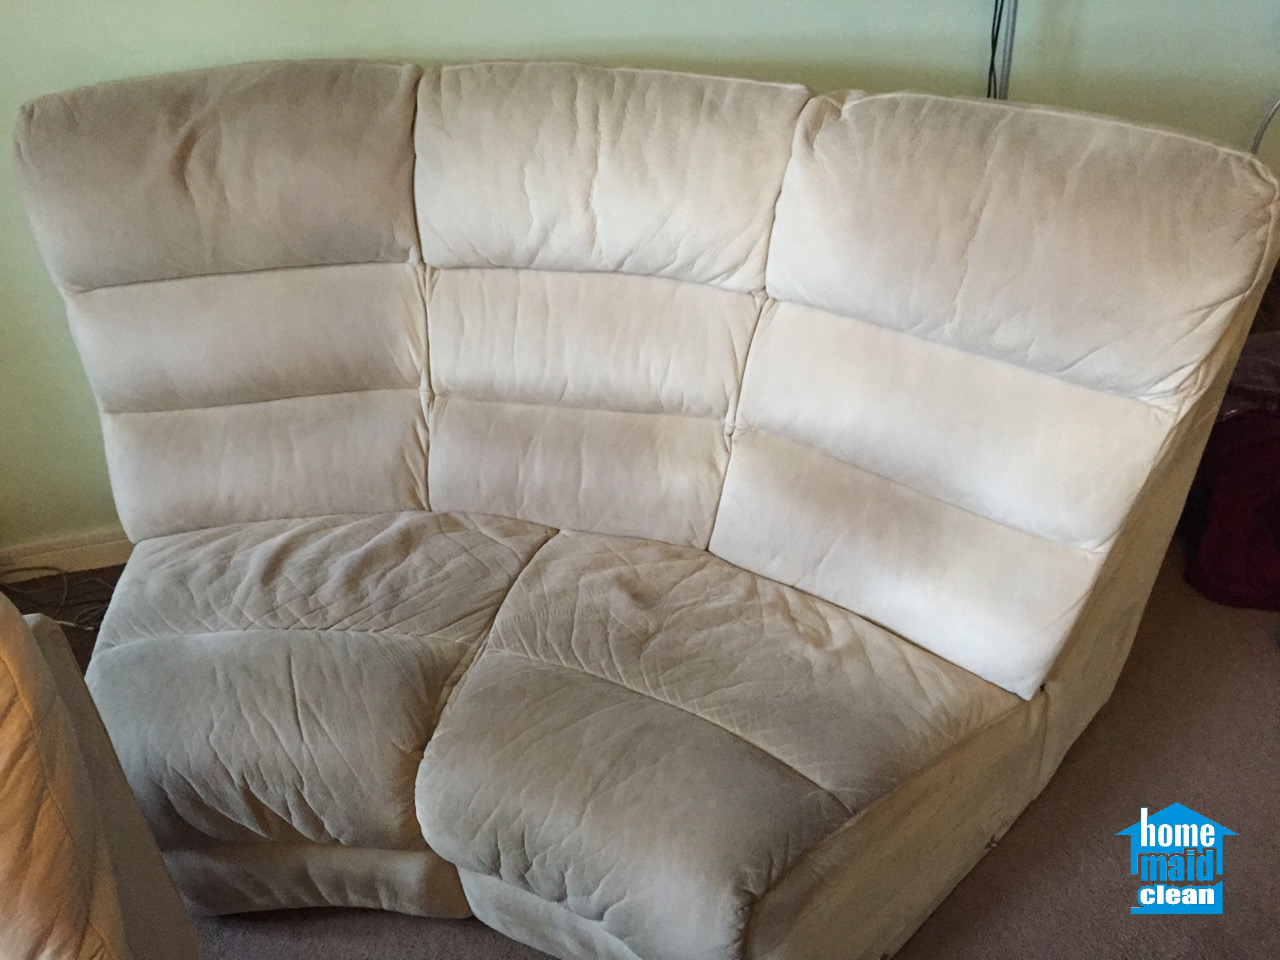 Sofa Steam Cleaner How To Get Permanent Marker Of A